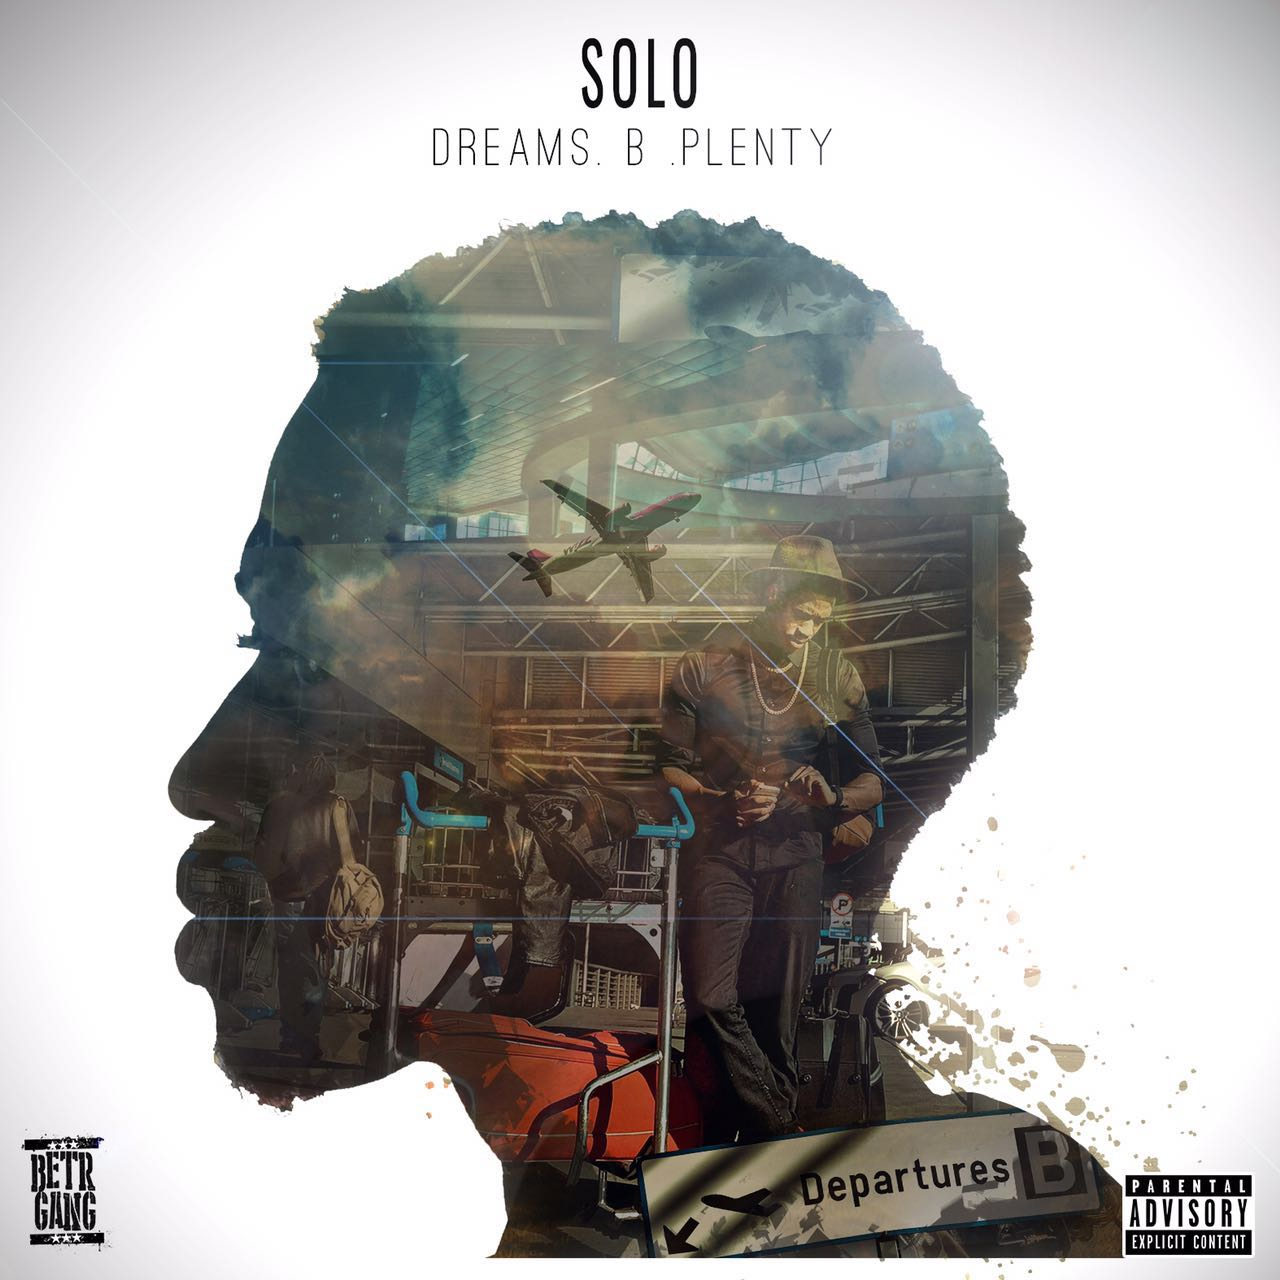 Solo Reveals '.DREAMS.B.PLENTY.' Artwork CklP4ksW0AAlaZE jpg large